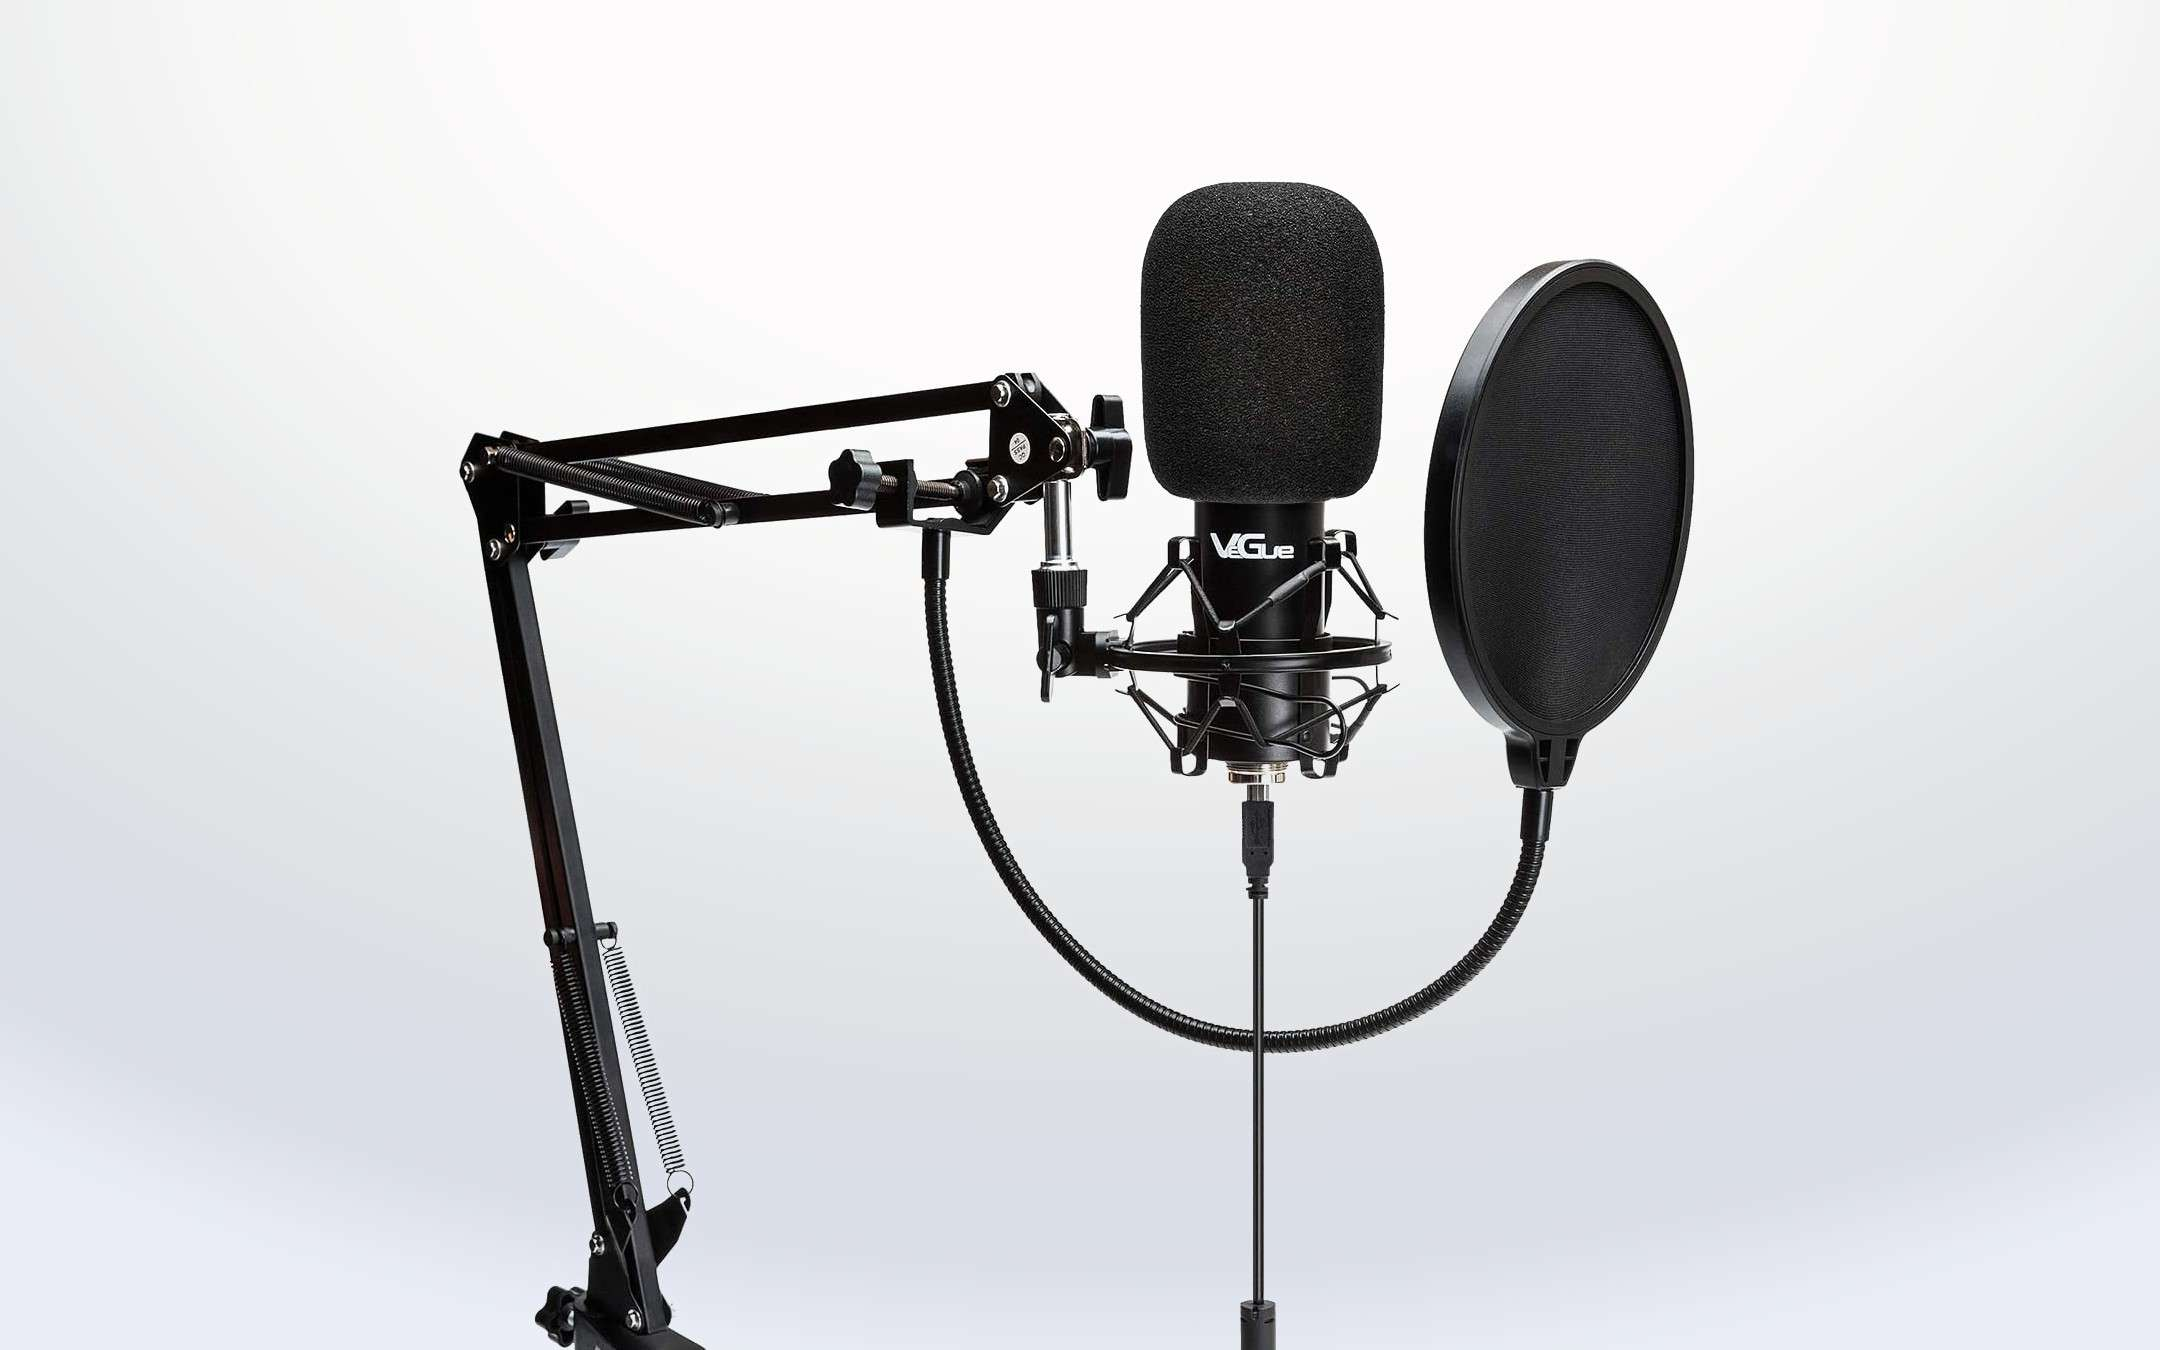 Podcaster becomes one: here is a microphone on occasion